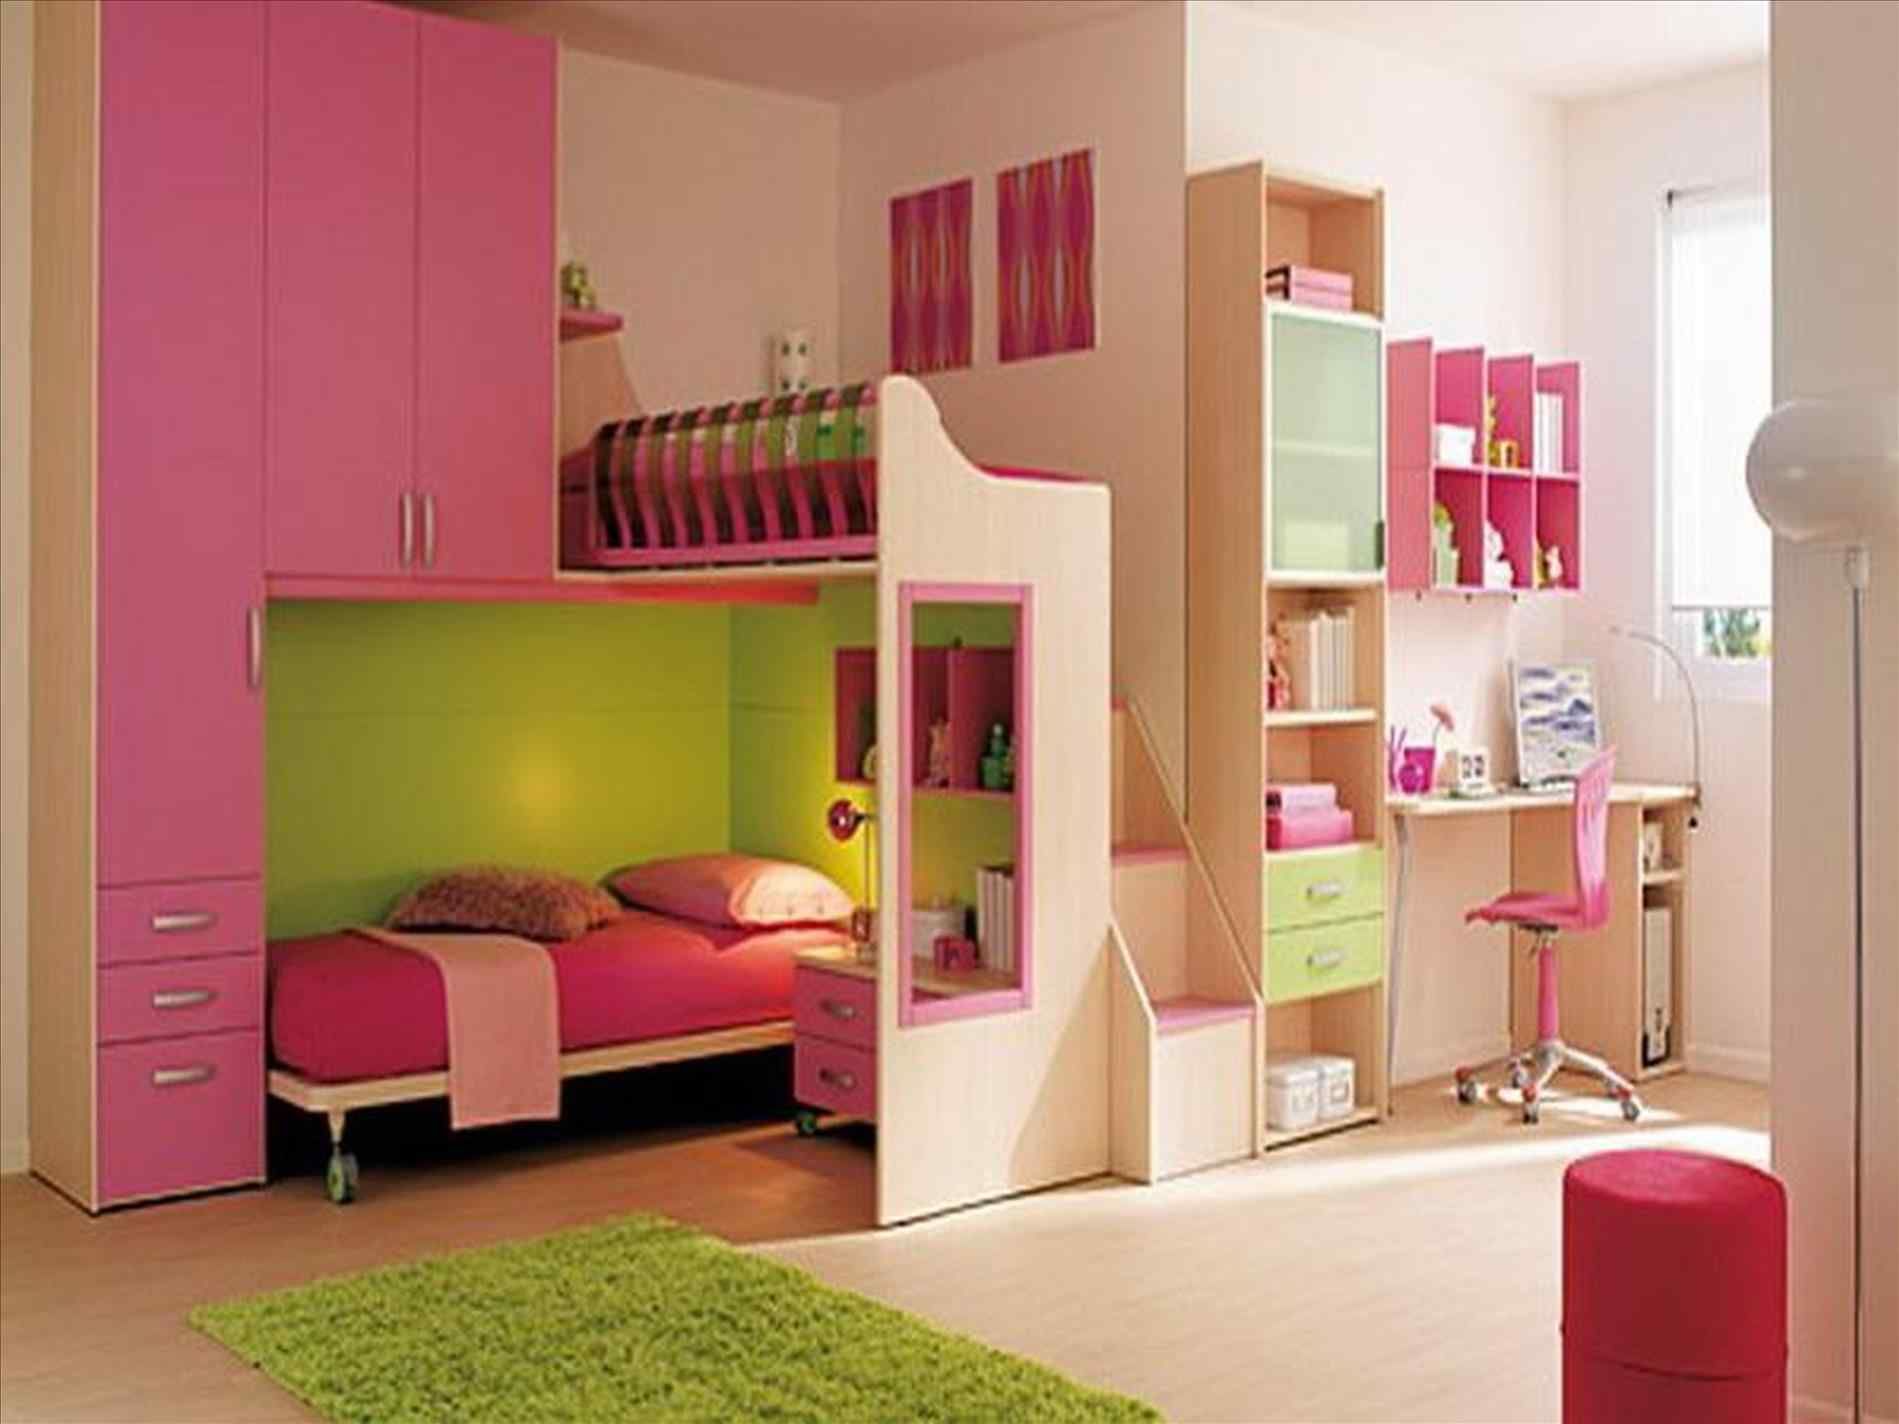 Cool Bedroom Ideas For Small Rooms For Kids Adsbygoogle Window Adsbygoogle P Diy Wall Decor For Bedroom Girls Room Design Girl Bedroom Walls